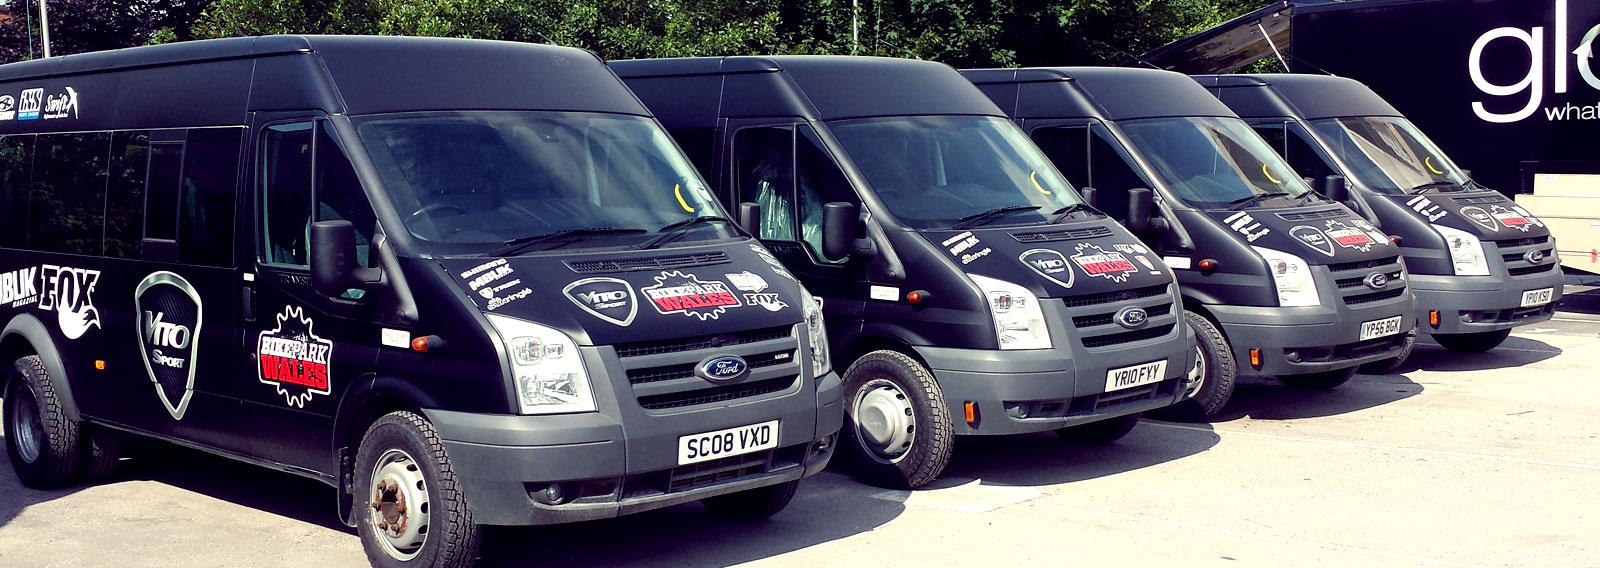 fleet of black vans with custom graphics